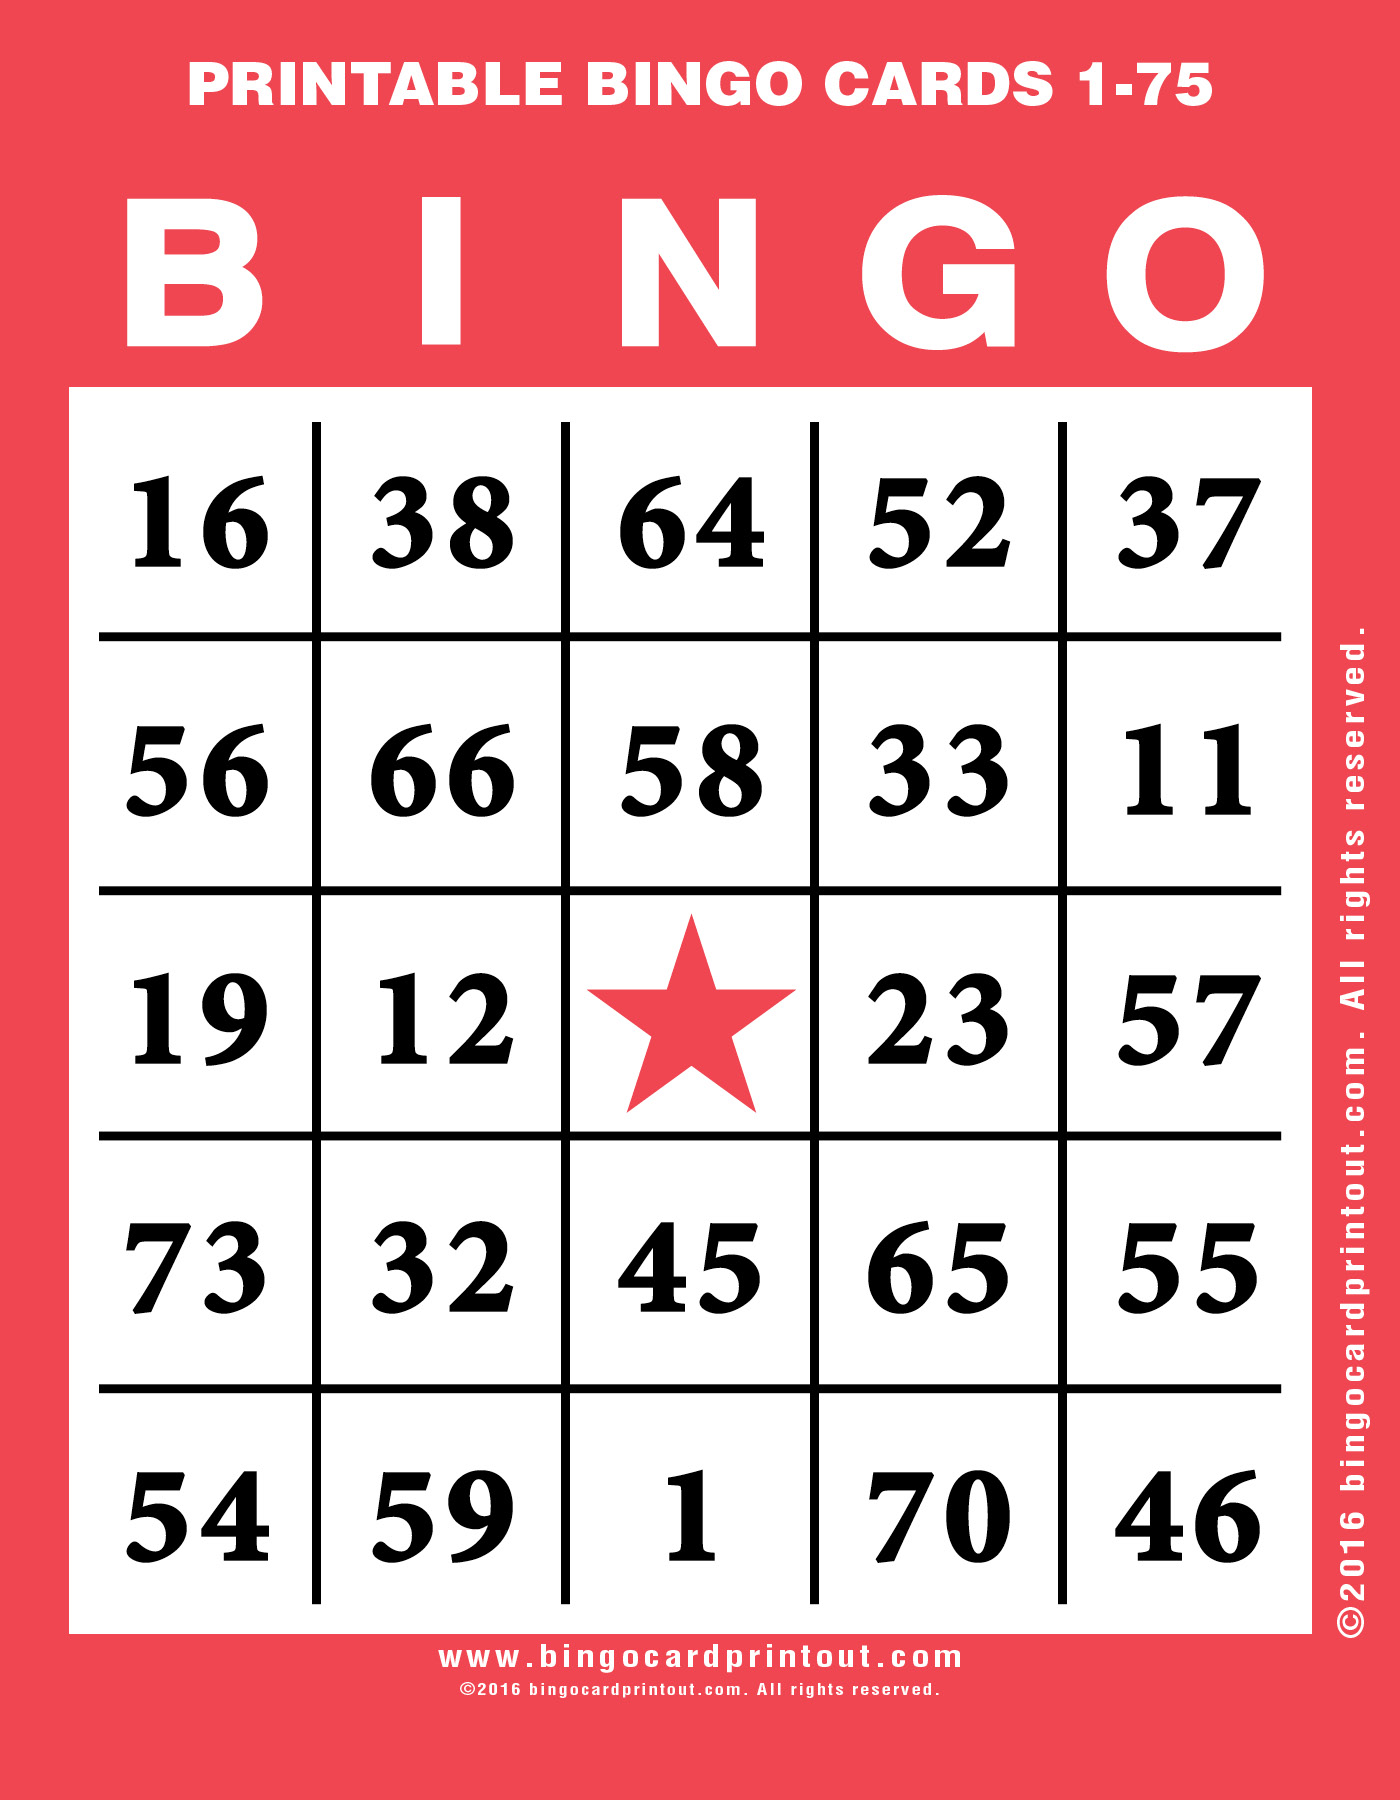 Sweet image in printable bingo cards 1 75